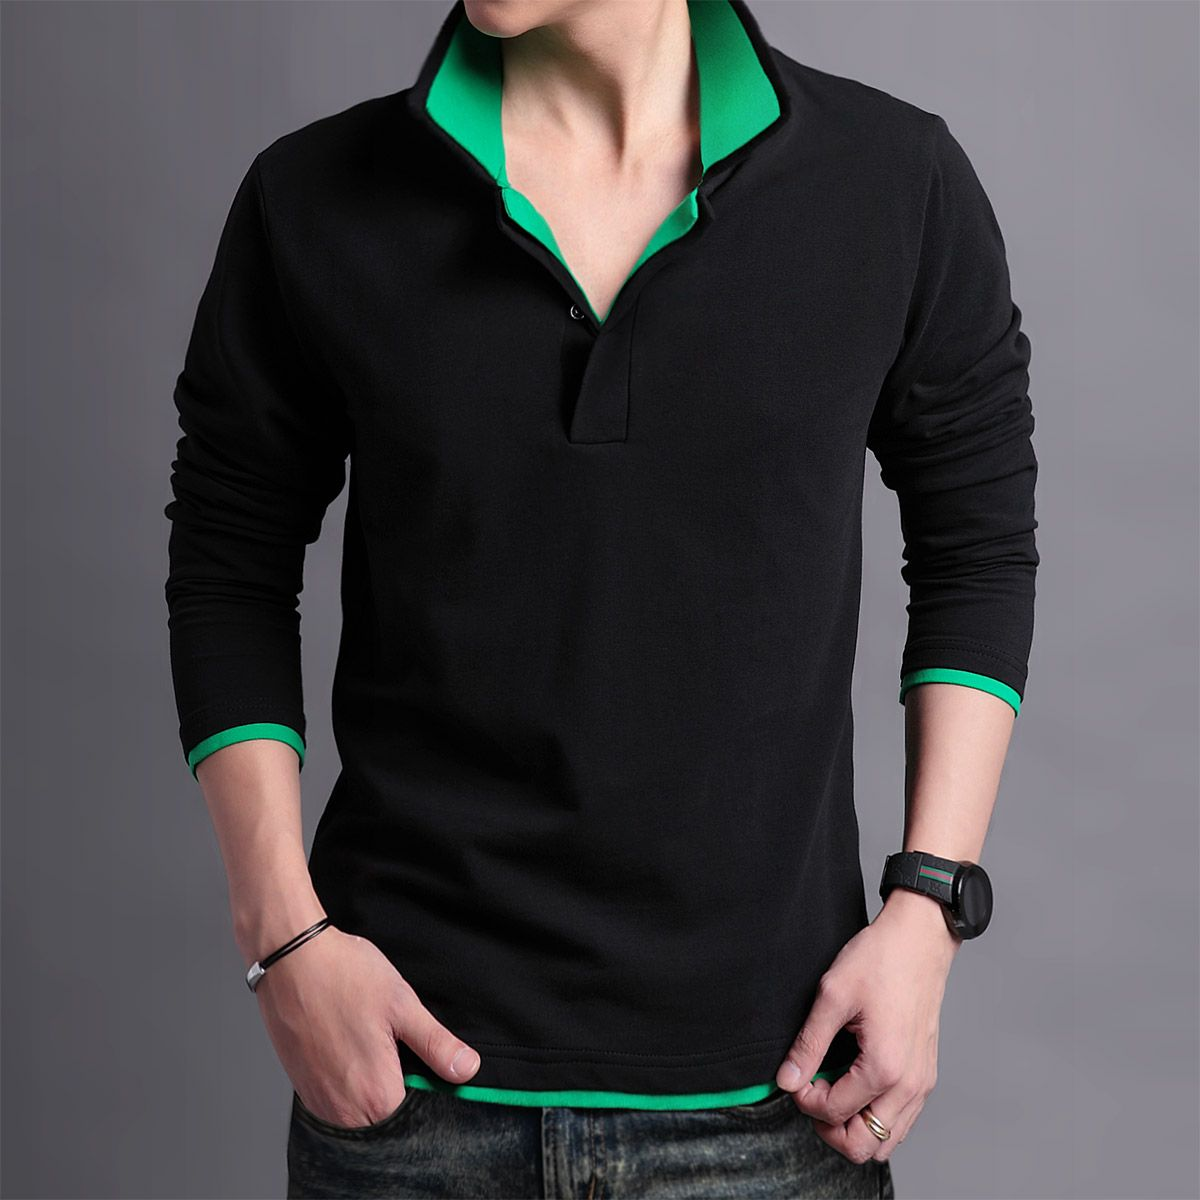 2013 new men 39 s autumn long sleeved t shirt unit price 29